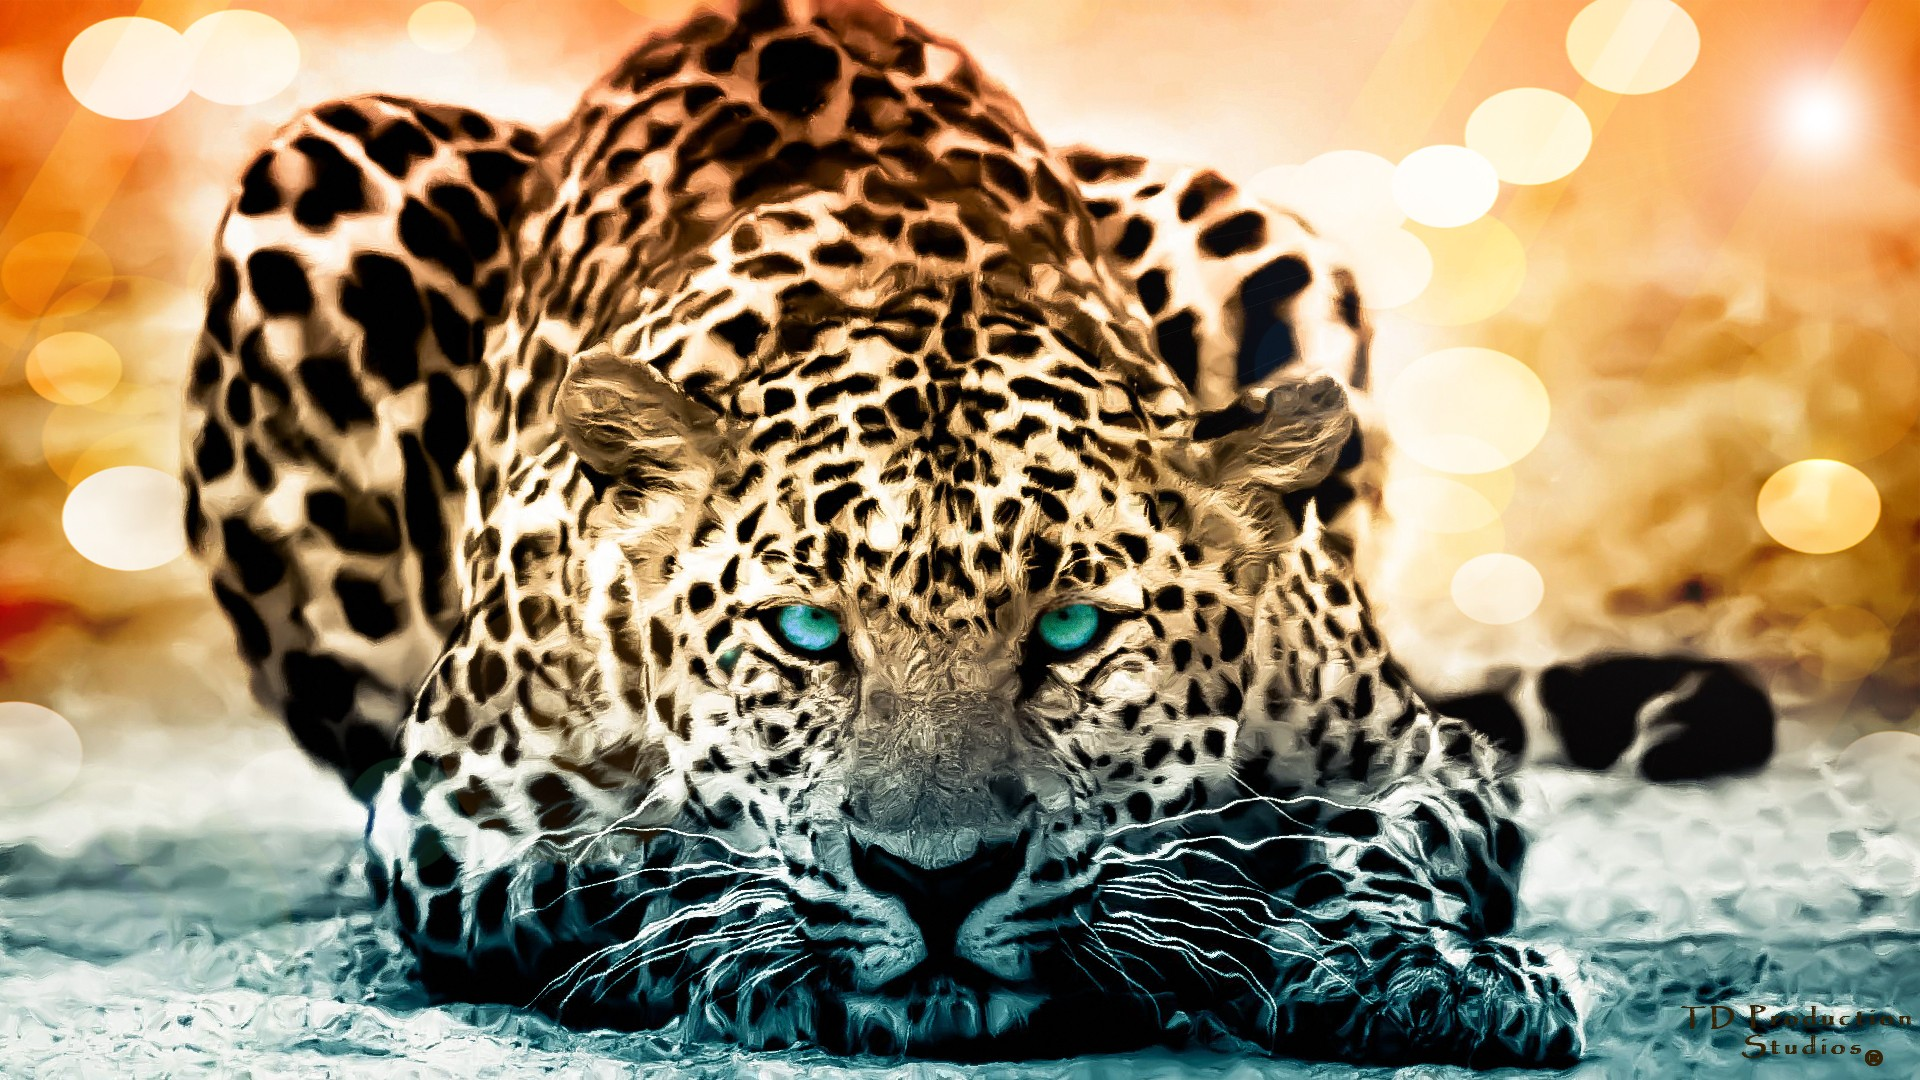 1920x1080 Animal Jaguar